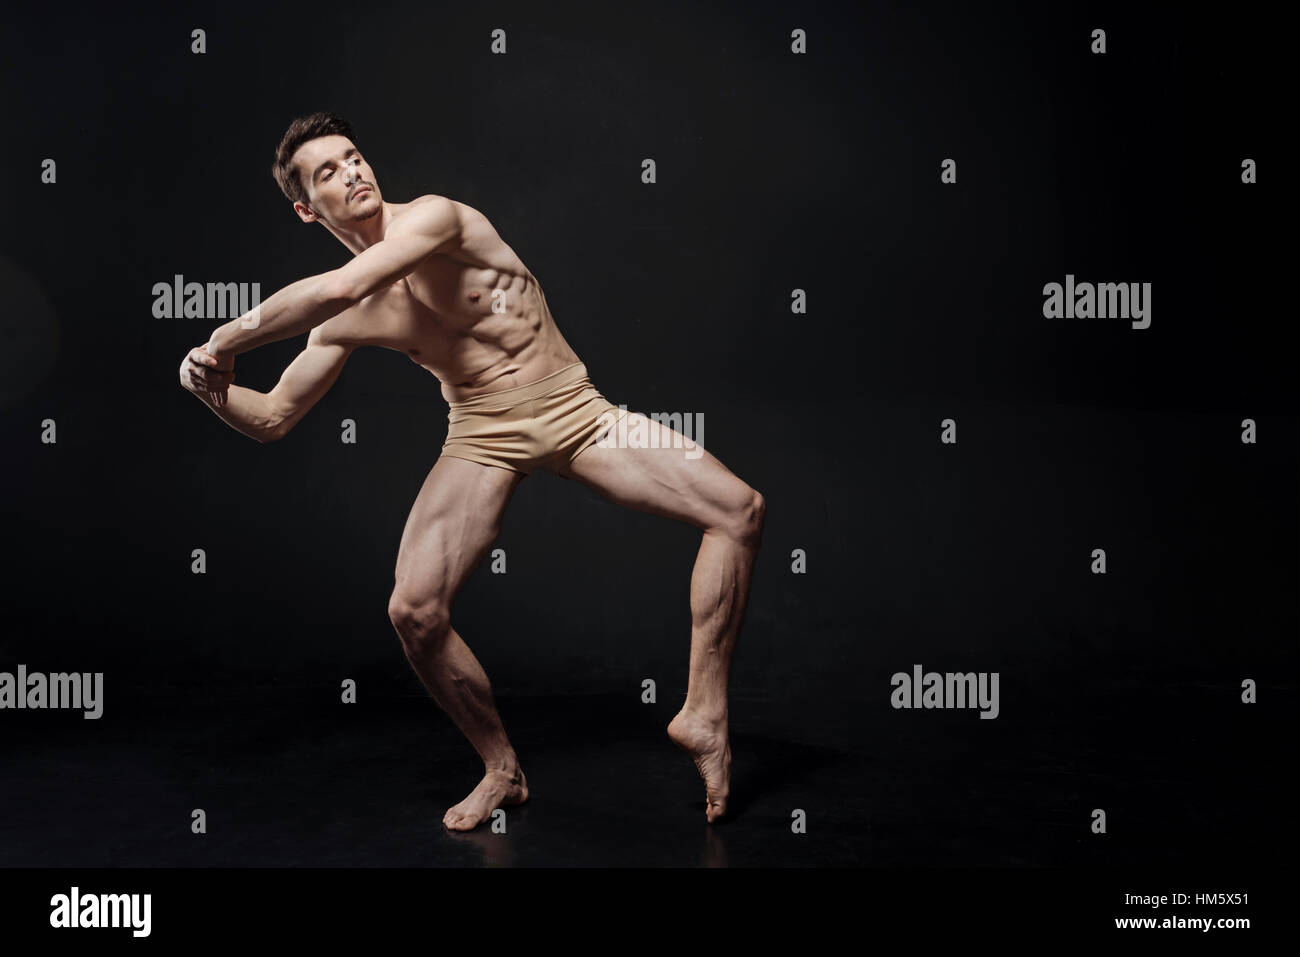 Springy athlete dancing in the black colored studio - Stock Image